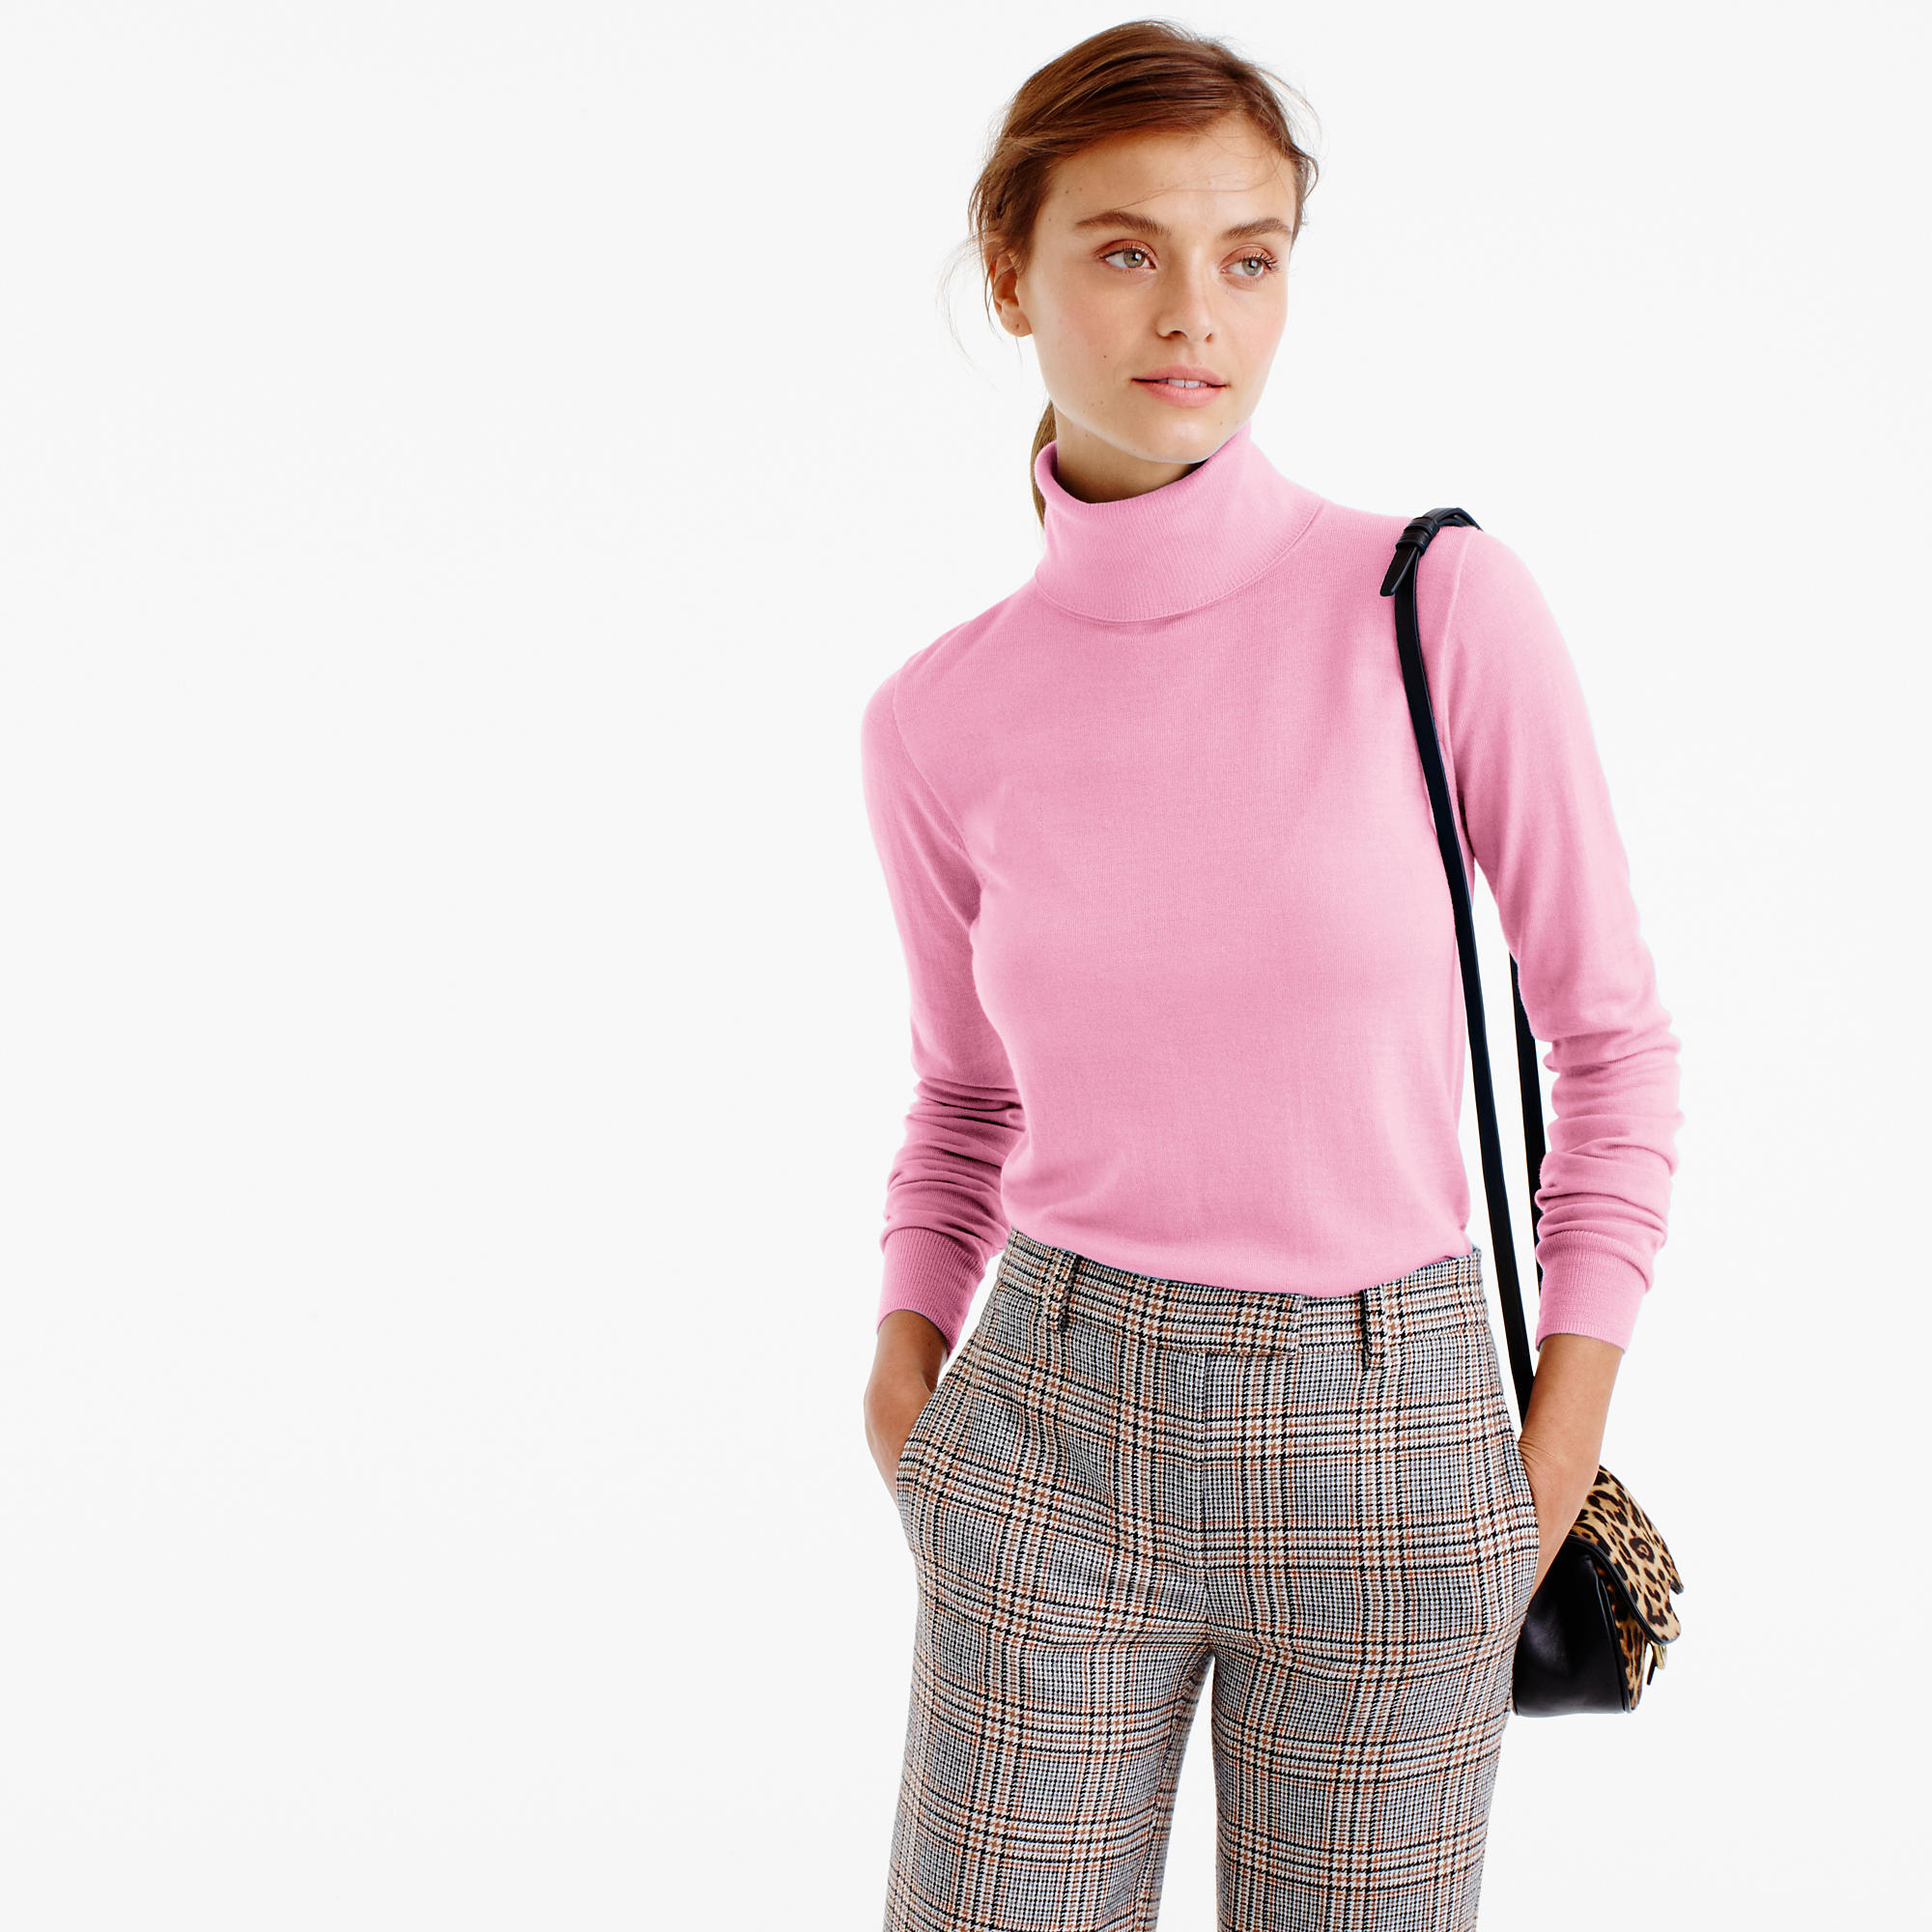 Tippi Turtleneck Sweater : Women's Sweaters | J.Crew